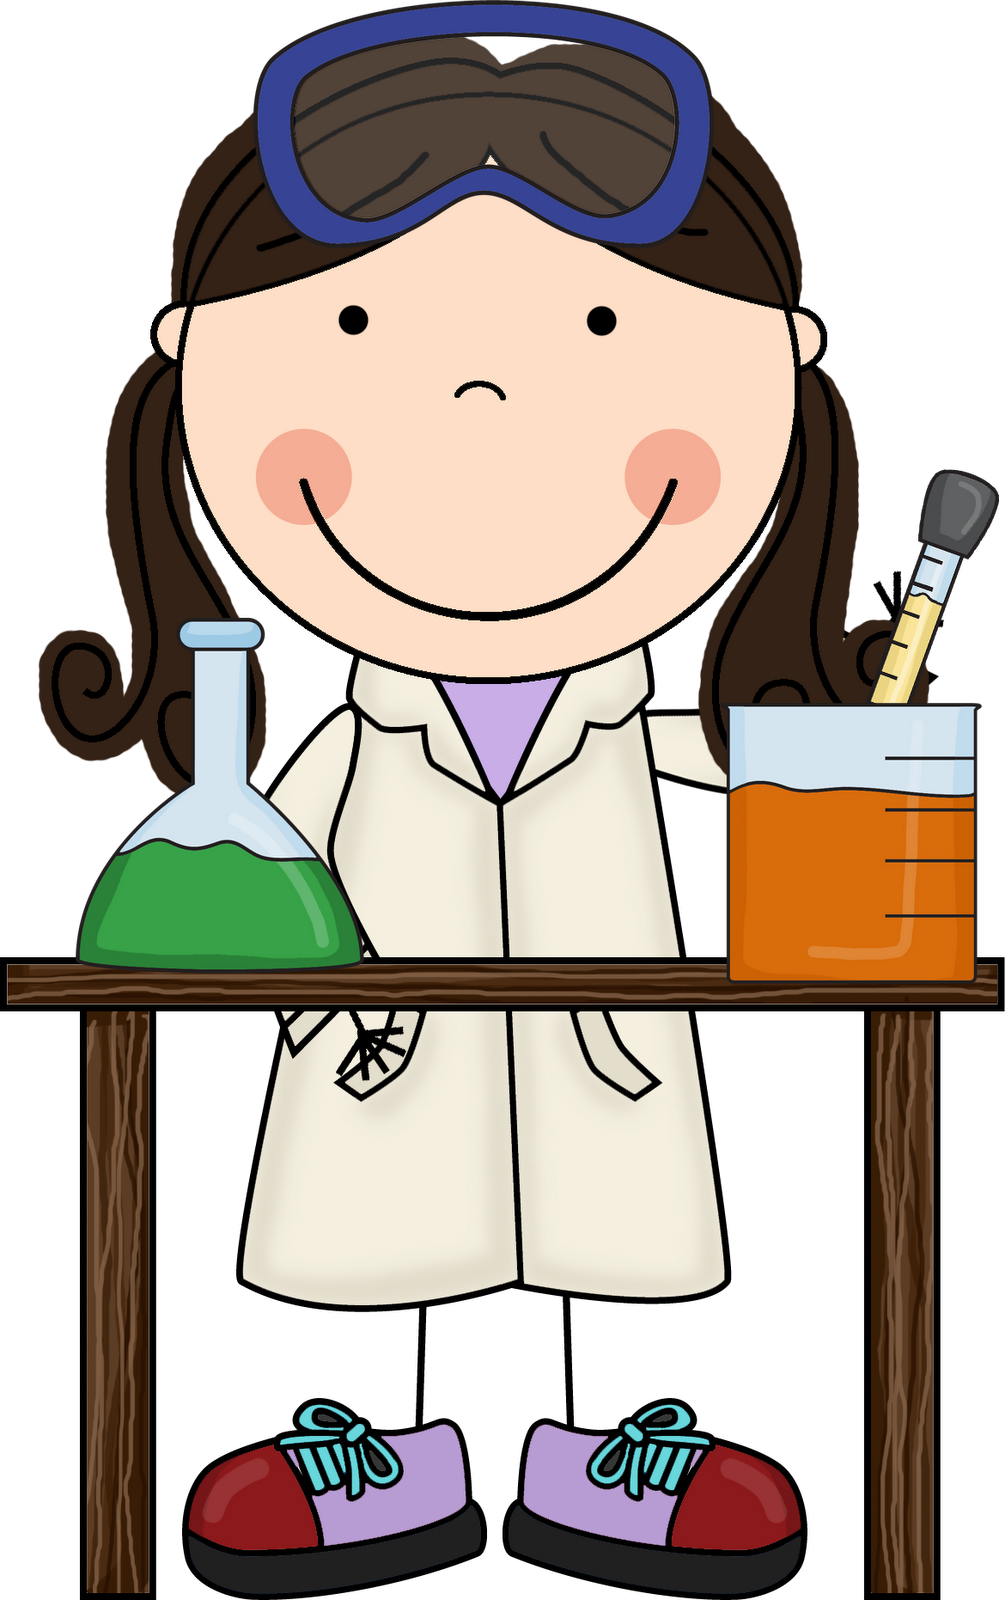 image transparent library Little miss hypothesis looks. Science lab materials clipart